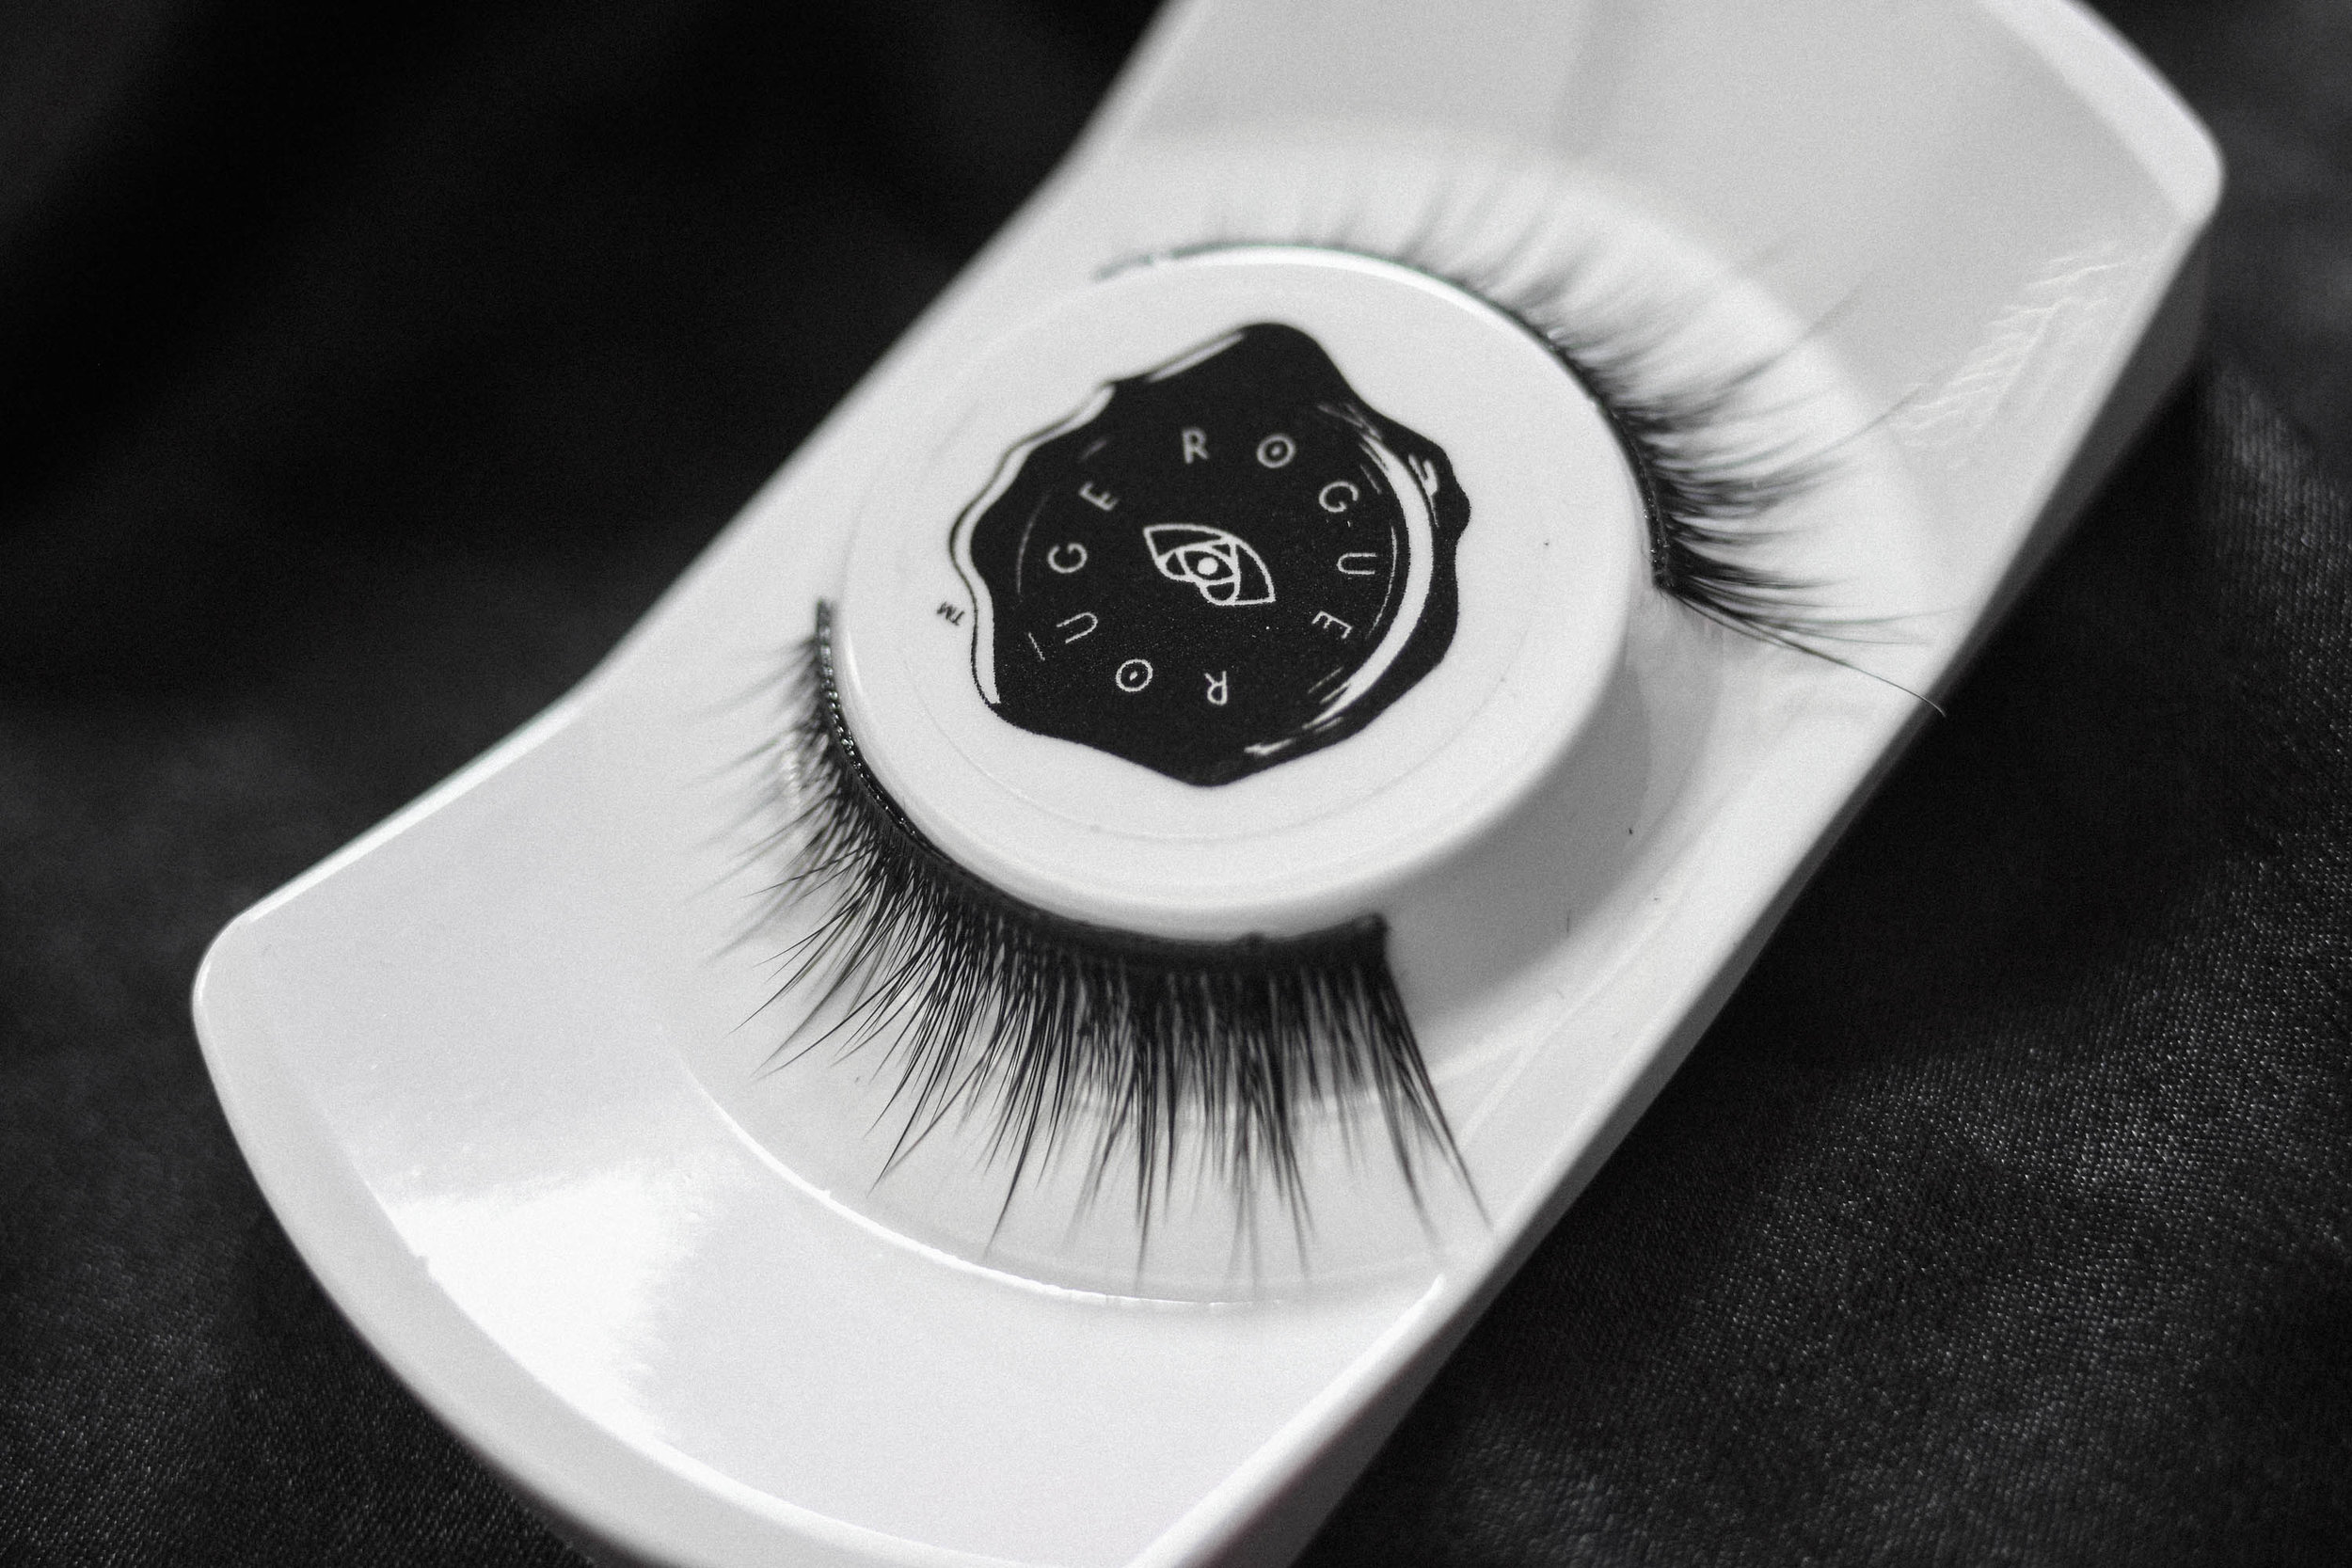 Starla   Starla will give your eye instant twinkle appeal with her varying lash lengths, so wispy and tapered to perfection. 'Starla' will make your eyes the prettiest star in all the constellations!